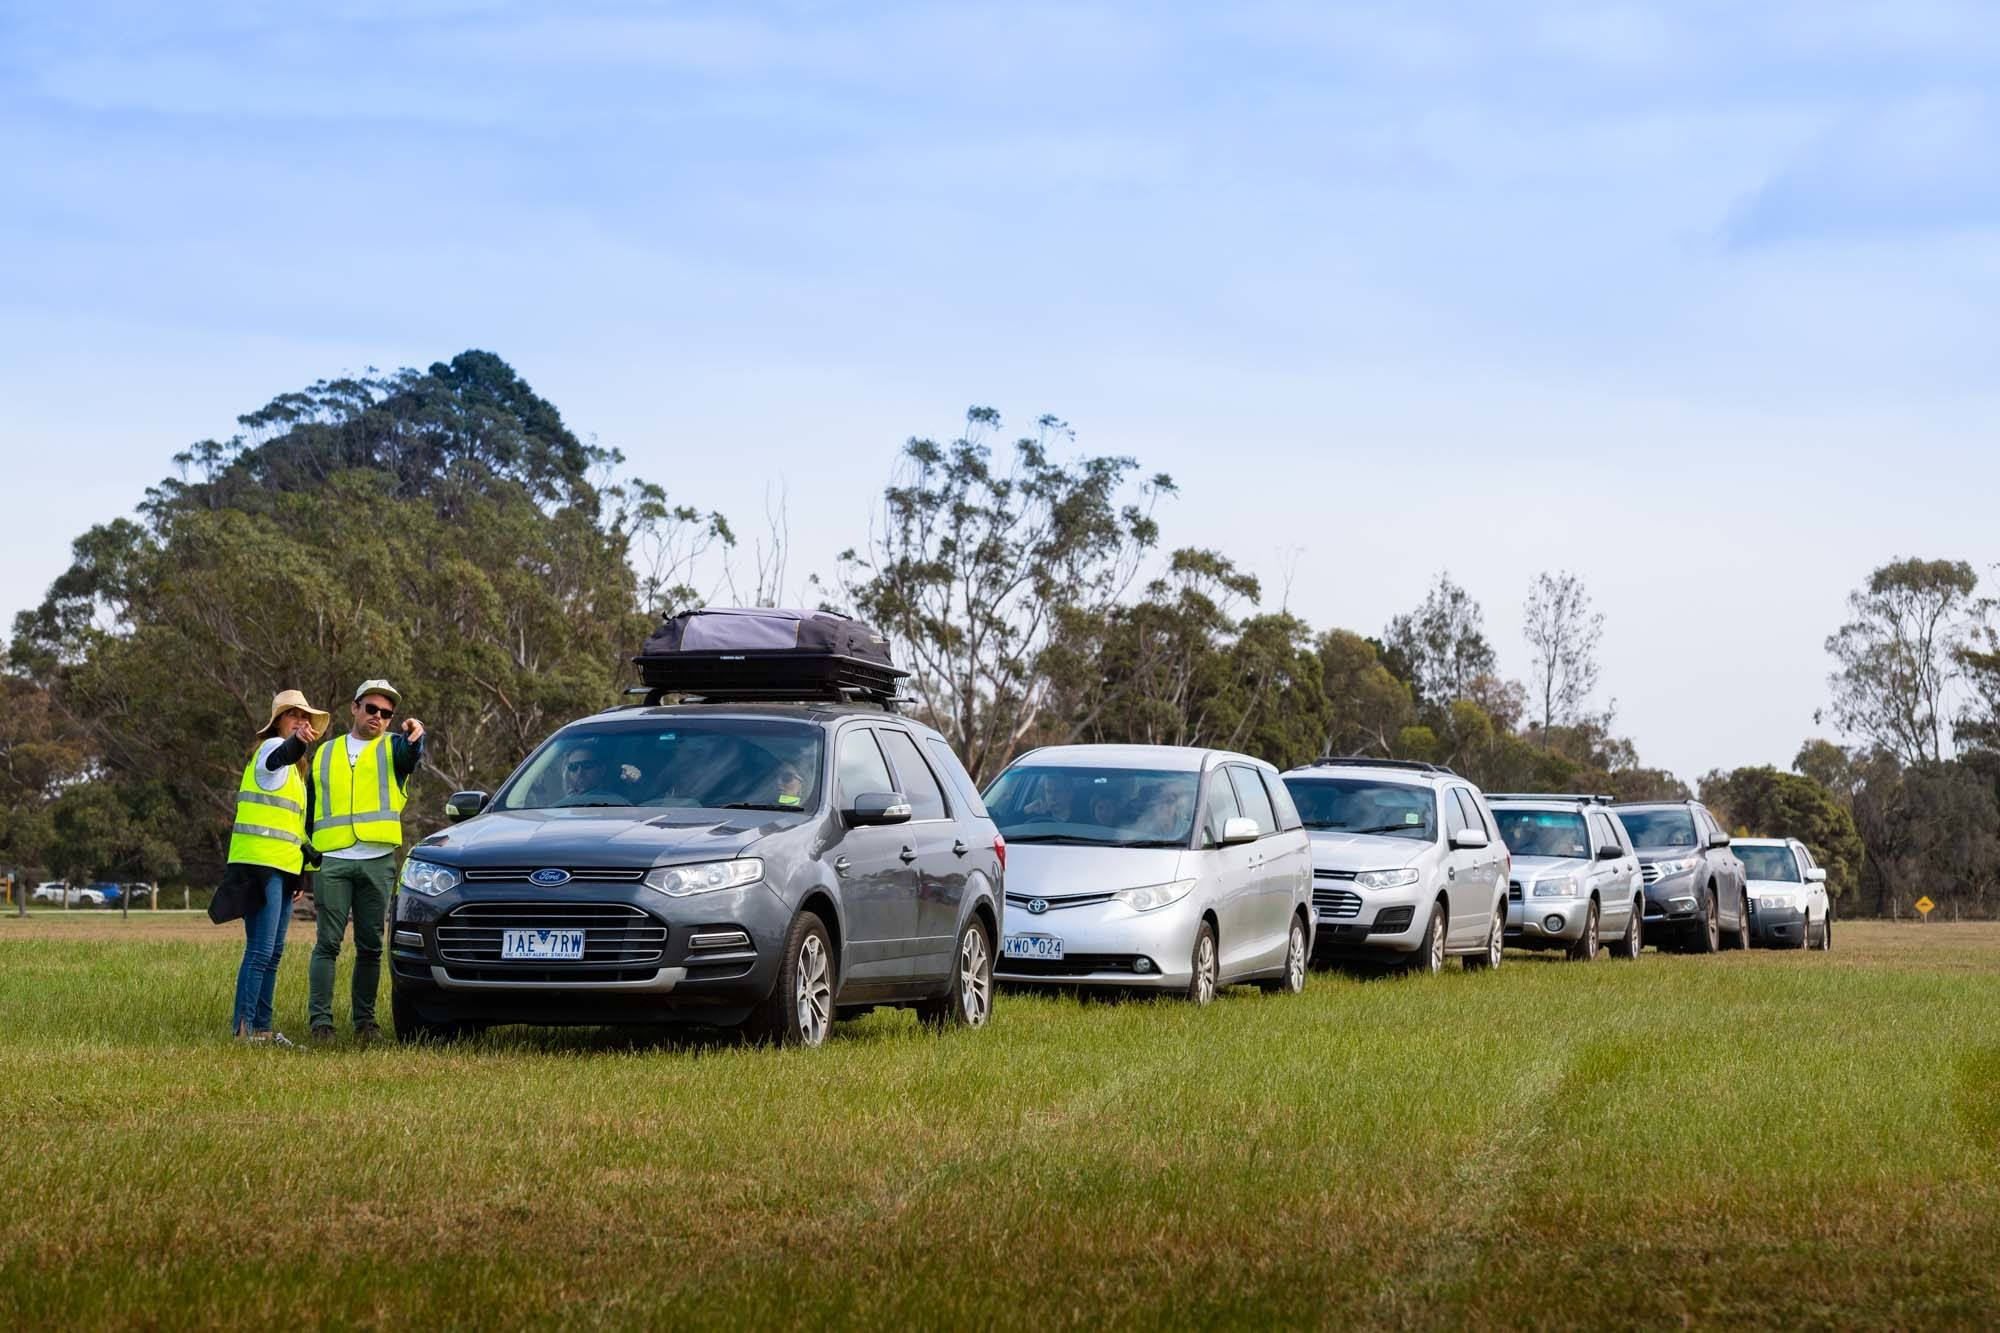 Cars lining up for the campgrounds at The Lost Lands 2016